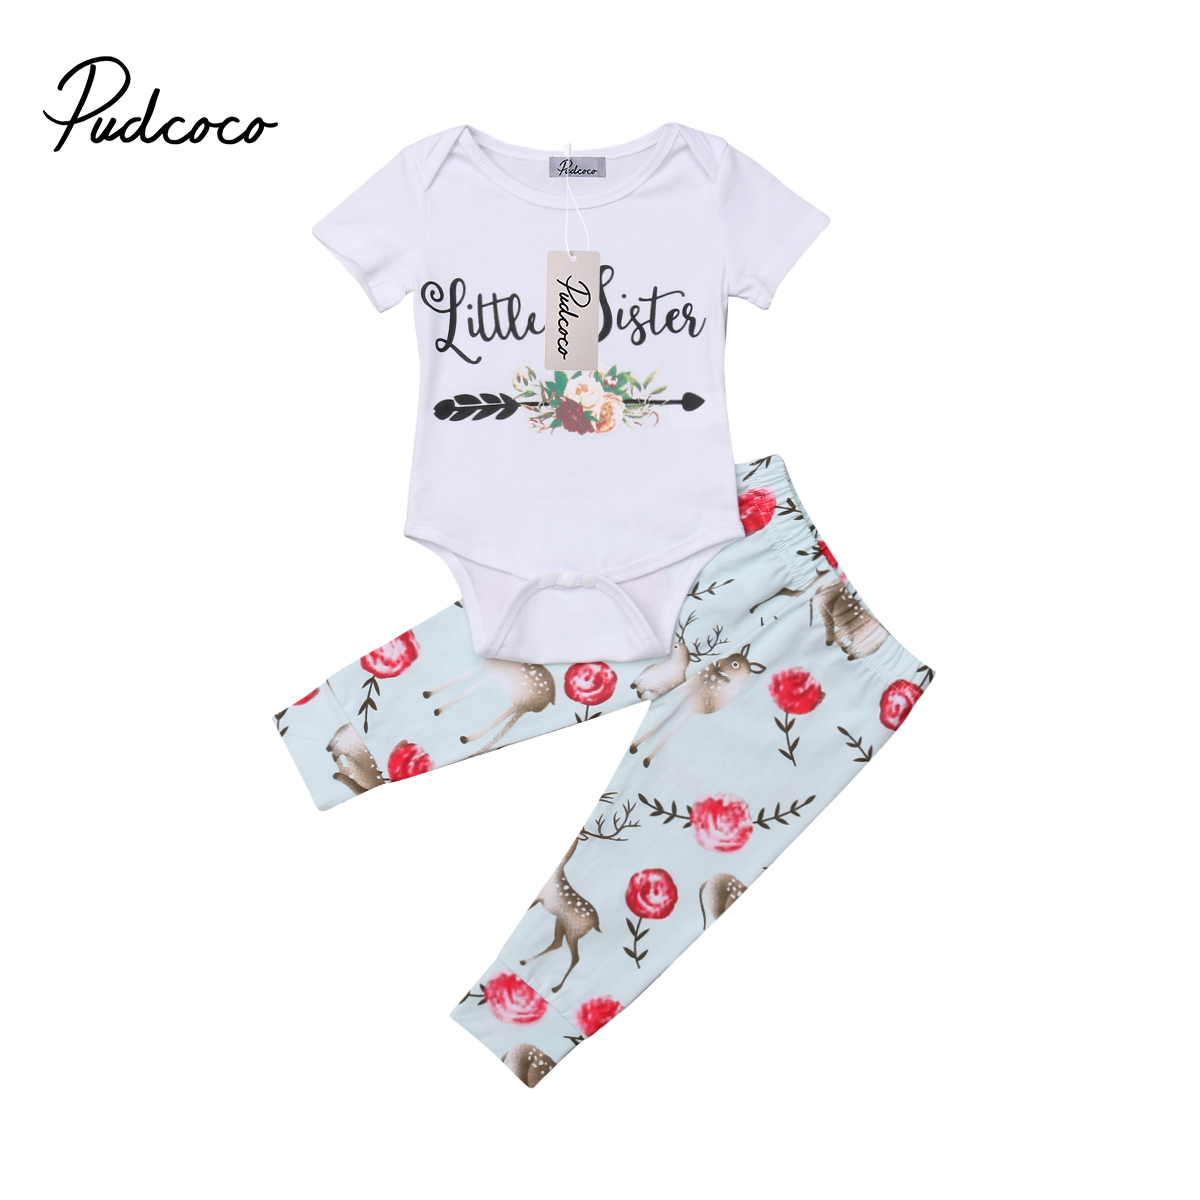 Family sister matching clothes set Baby Girls Little Big Sister Deer Romper Top Pant Outfits for Newborn Children Kid Clothing